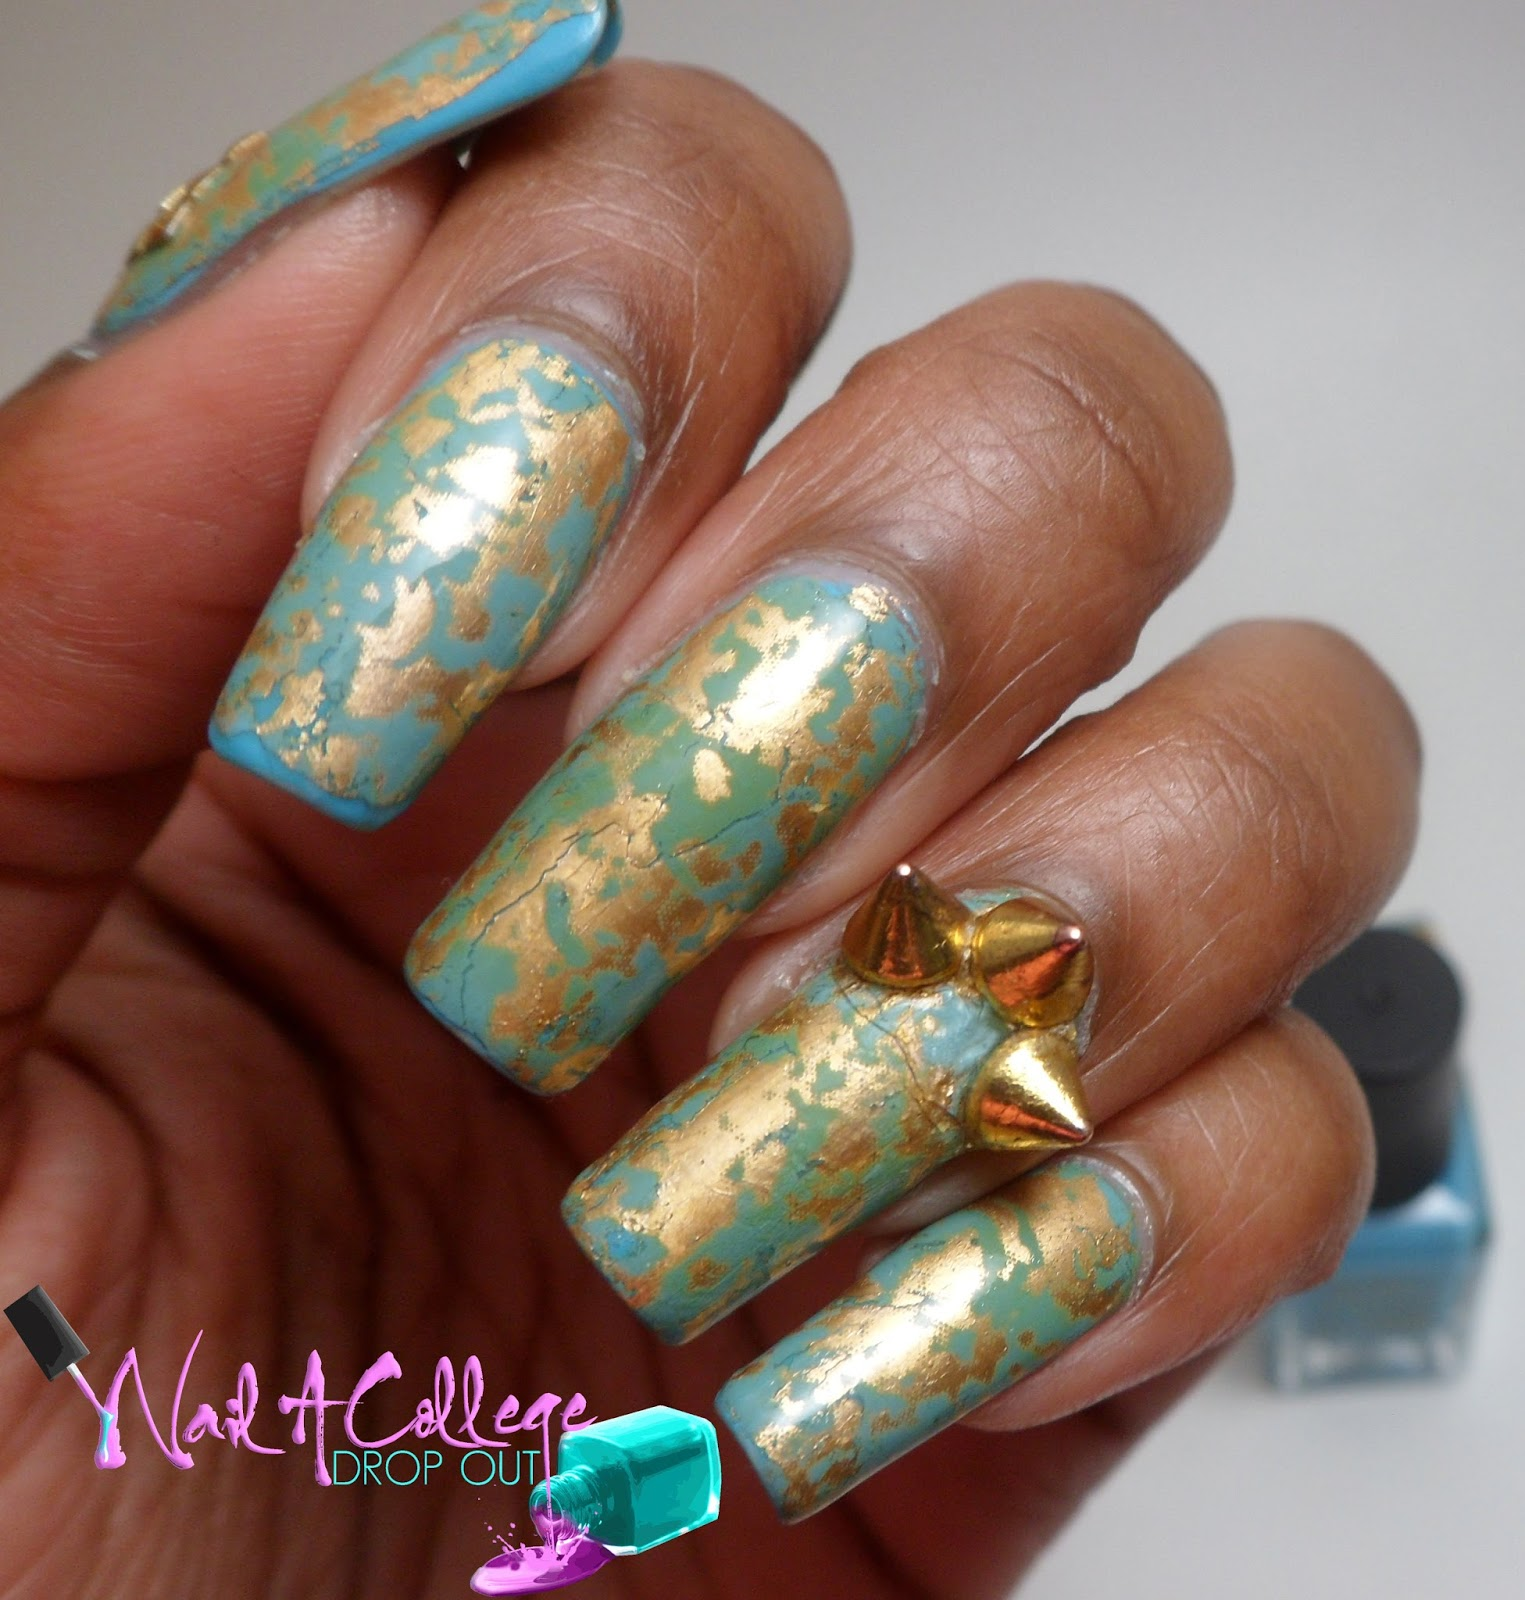 Nail A College Drop Out: More Spikes & Nail Art Foil Revisited